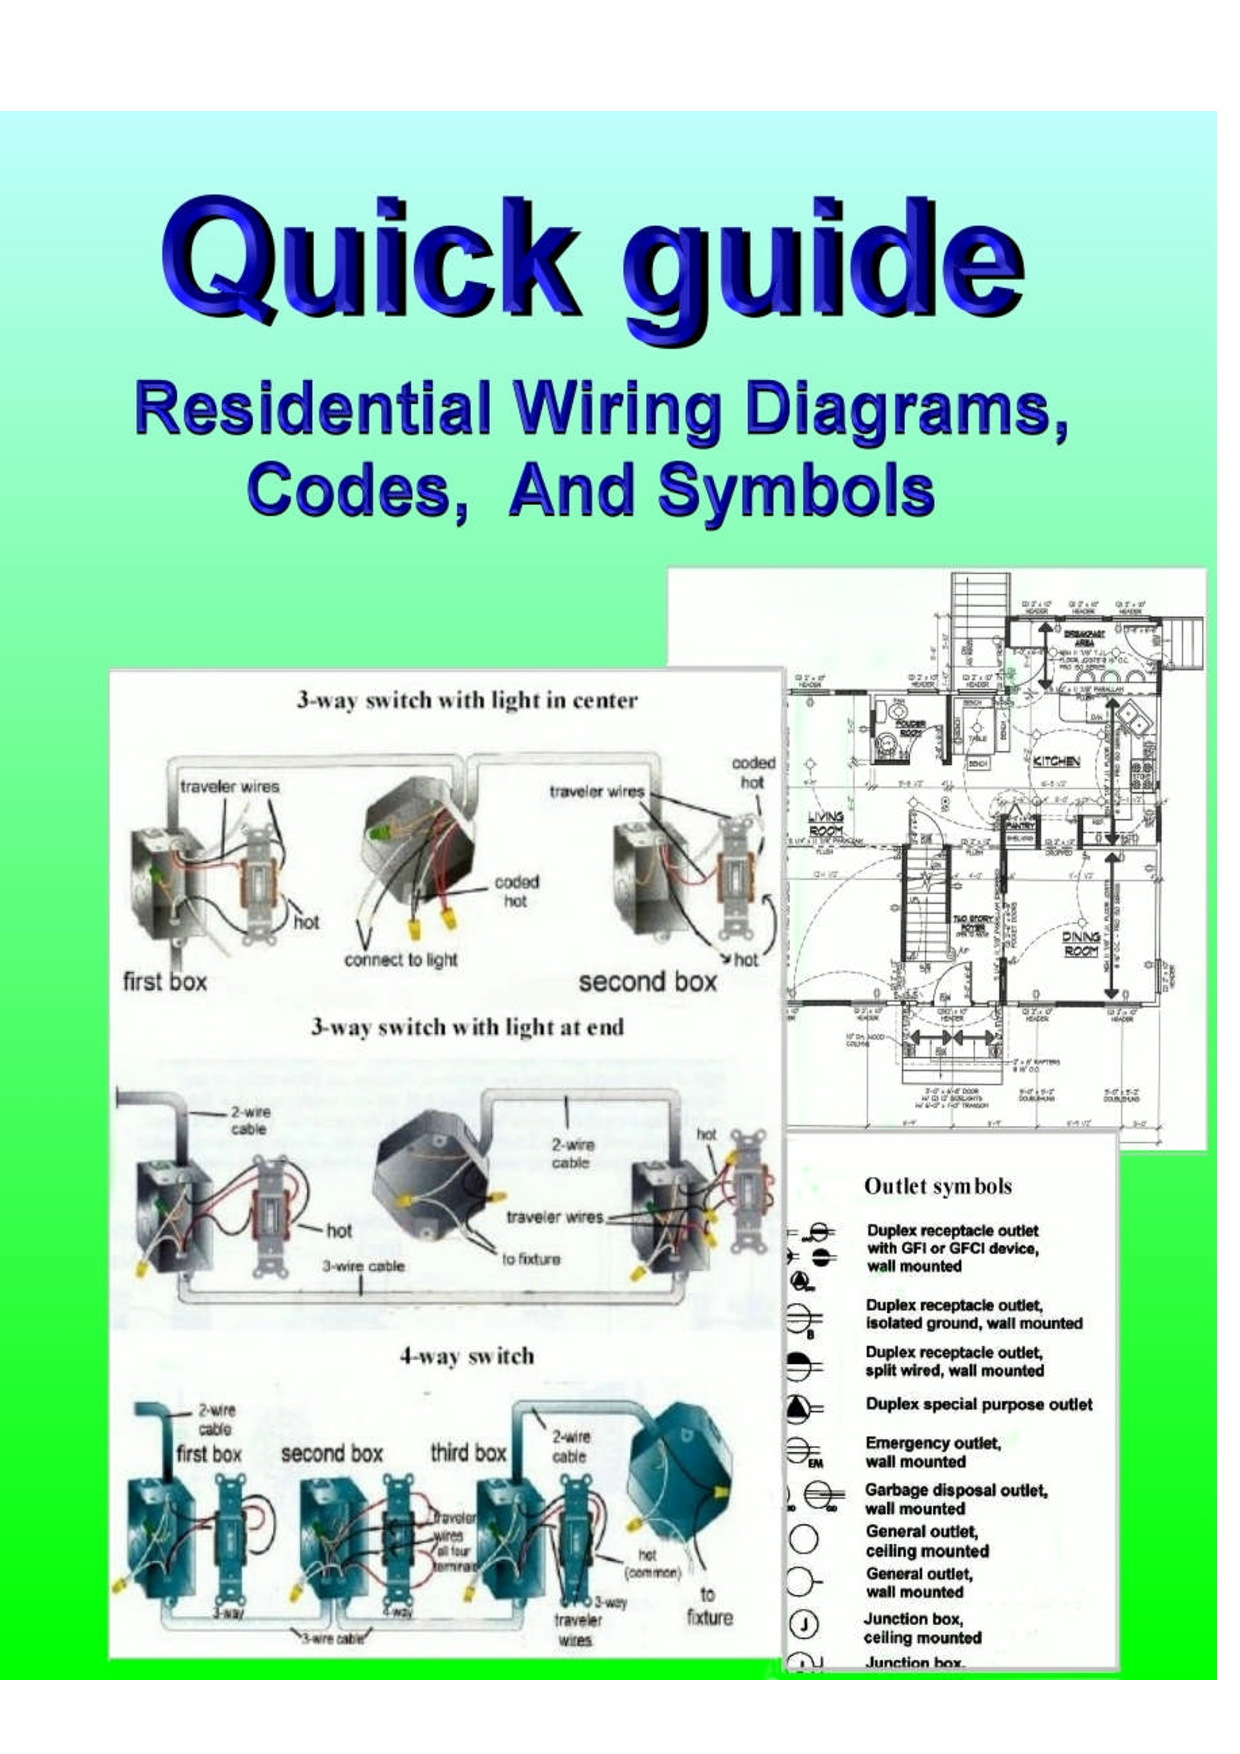 Home Electrical Wiring Diagrams | Informational | Pinterest ...